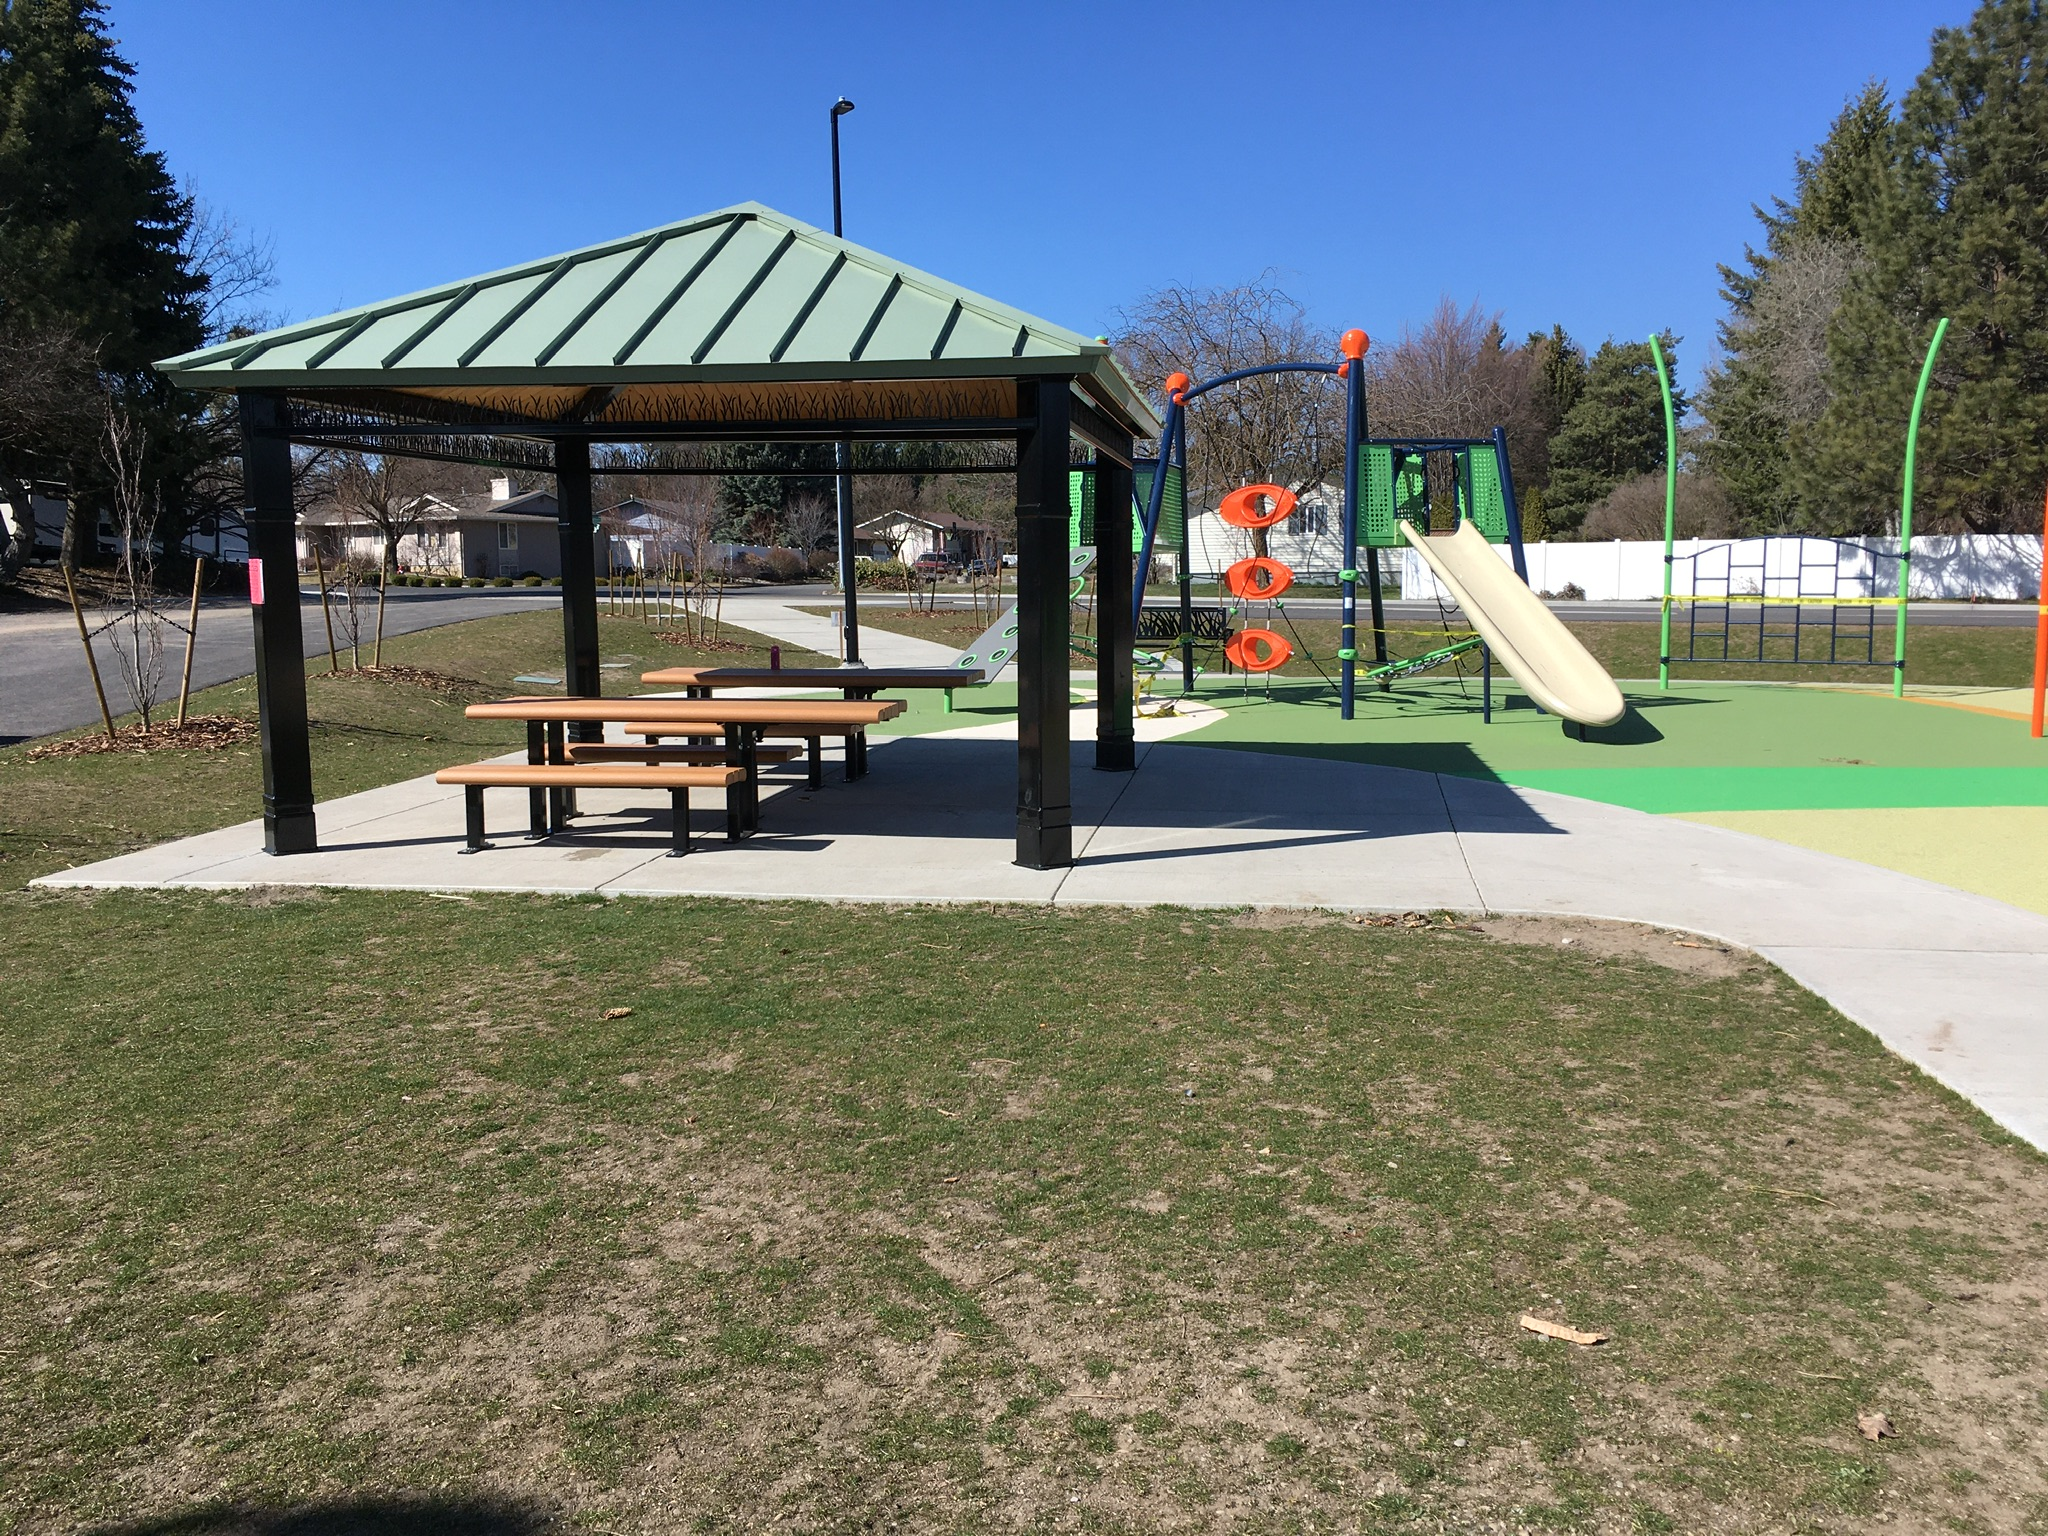 Picnic area with accessible tables